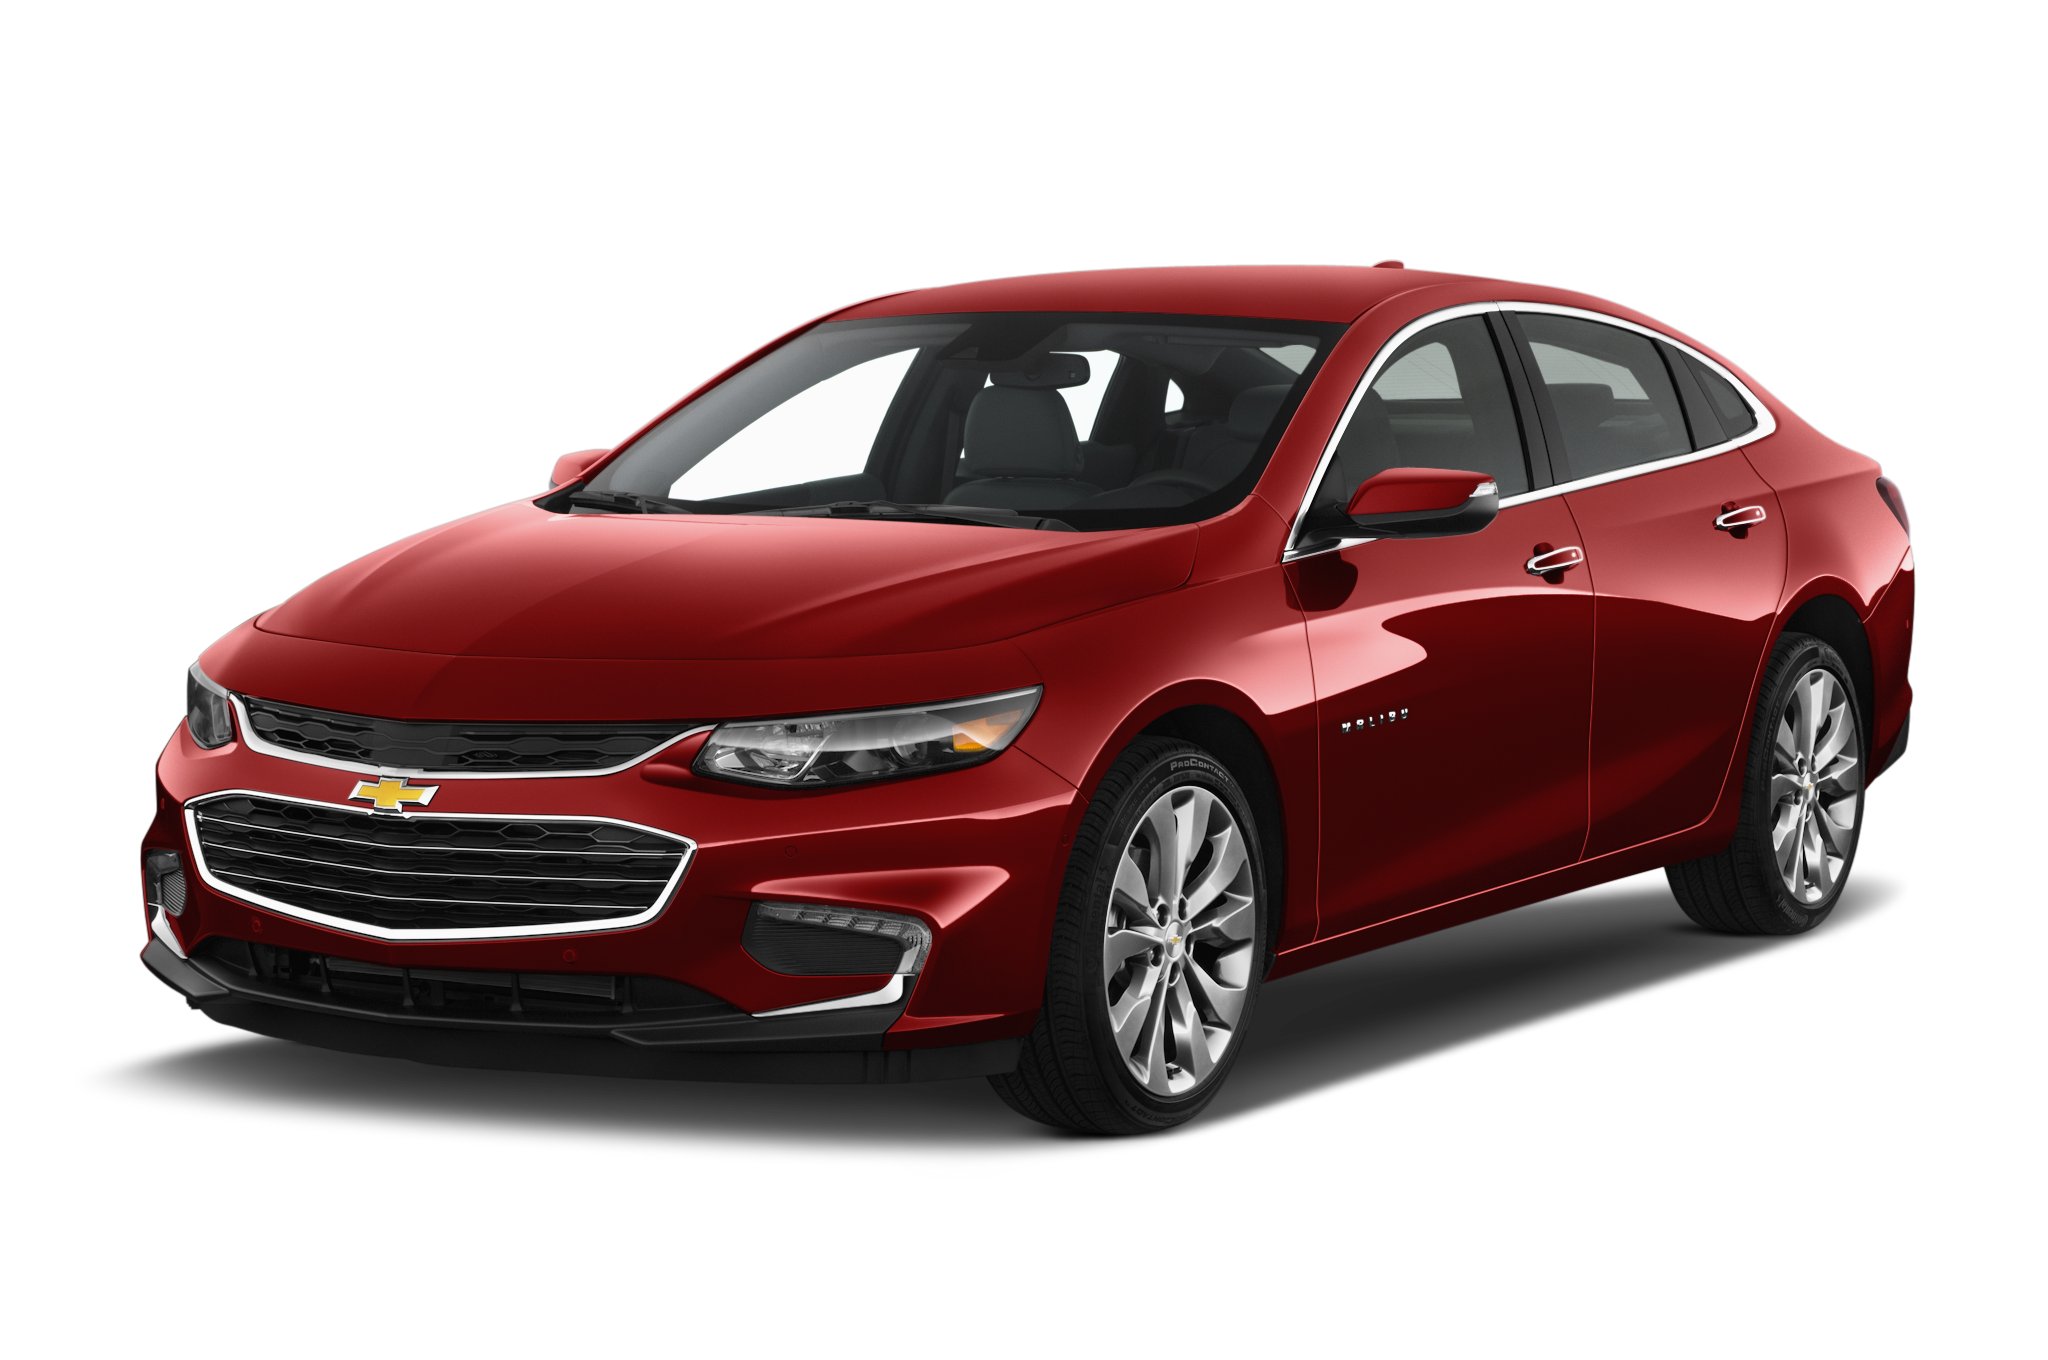 2016 chevy malibu png. Chevrolet reviews and